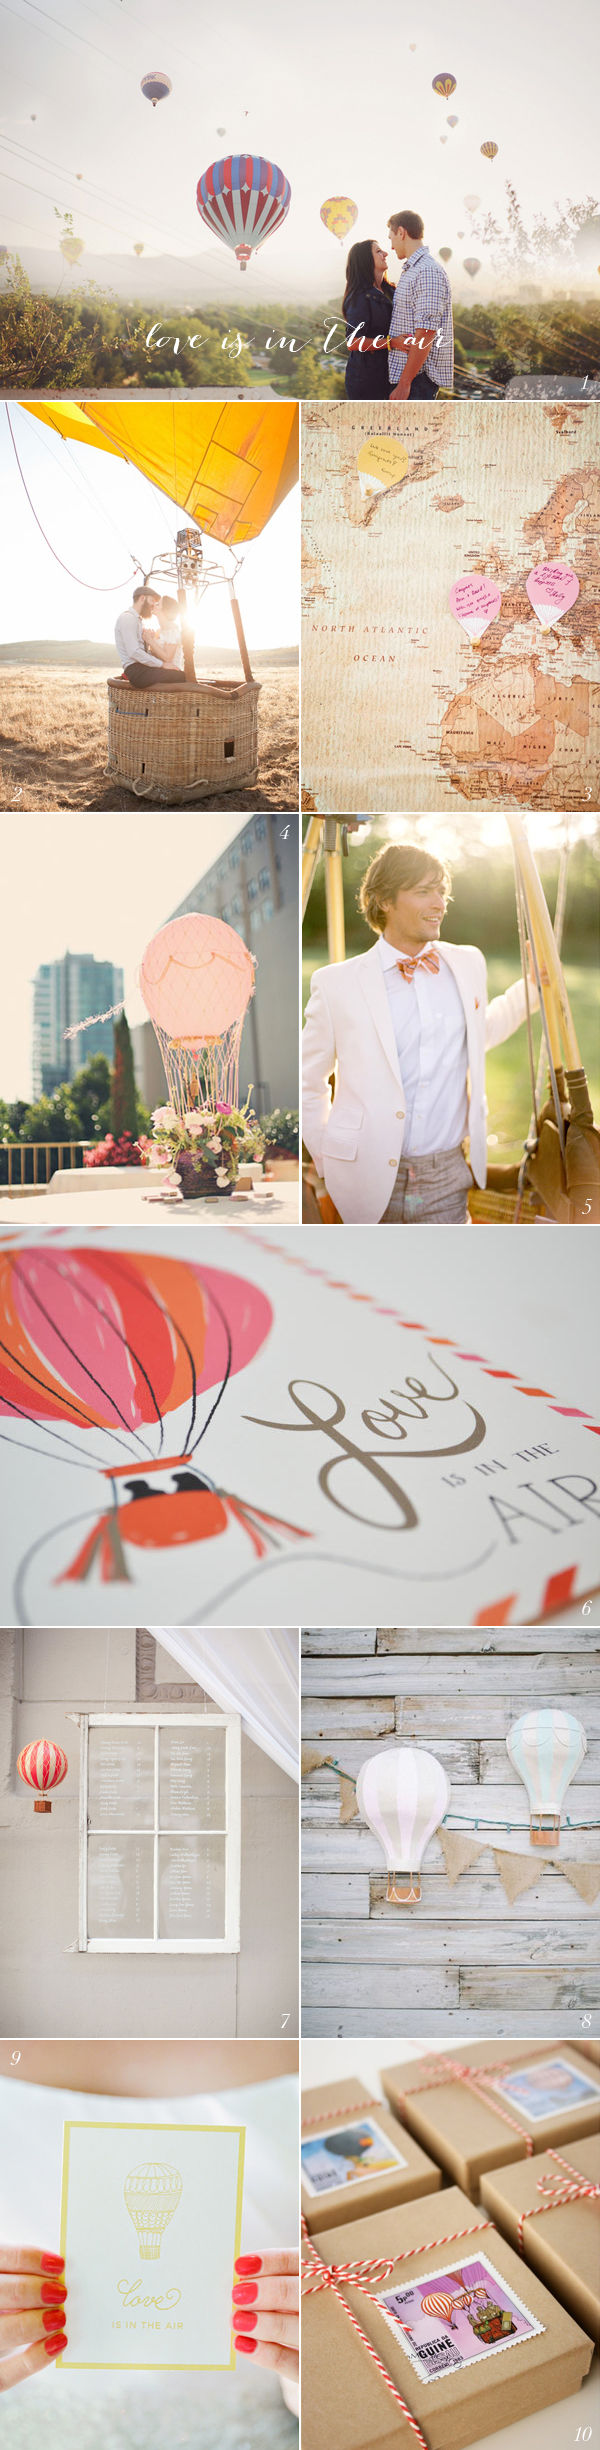 Hot Air Balloon Wedding Ideas